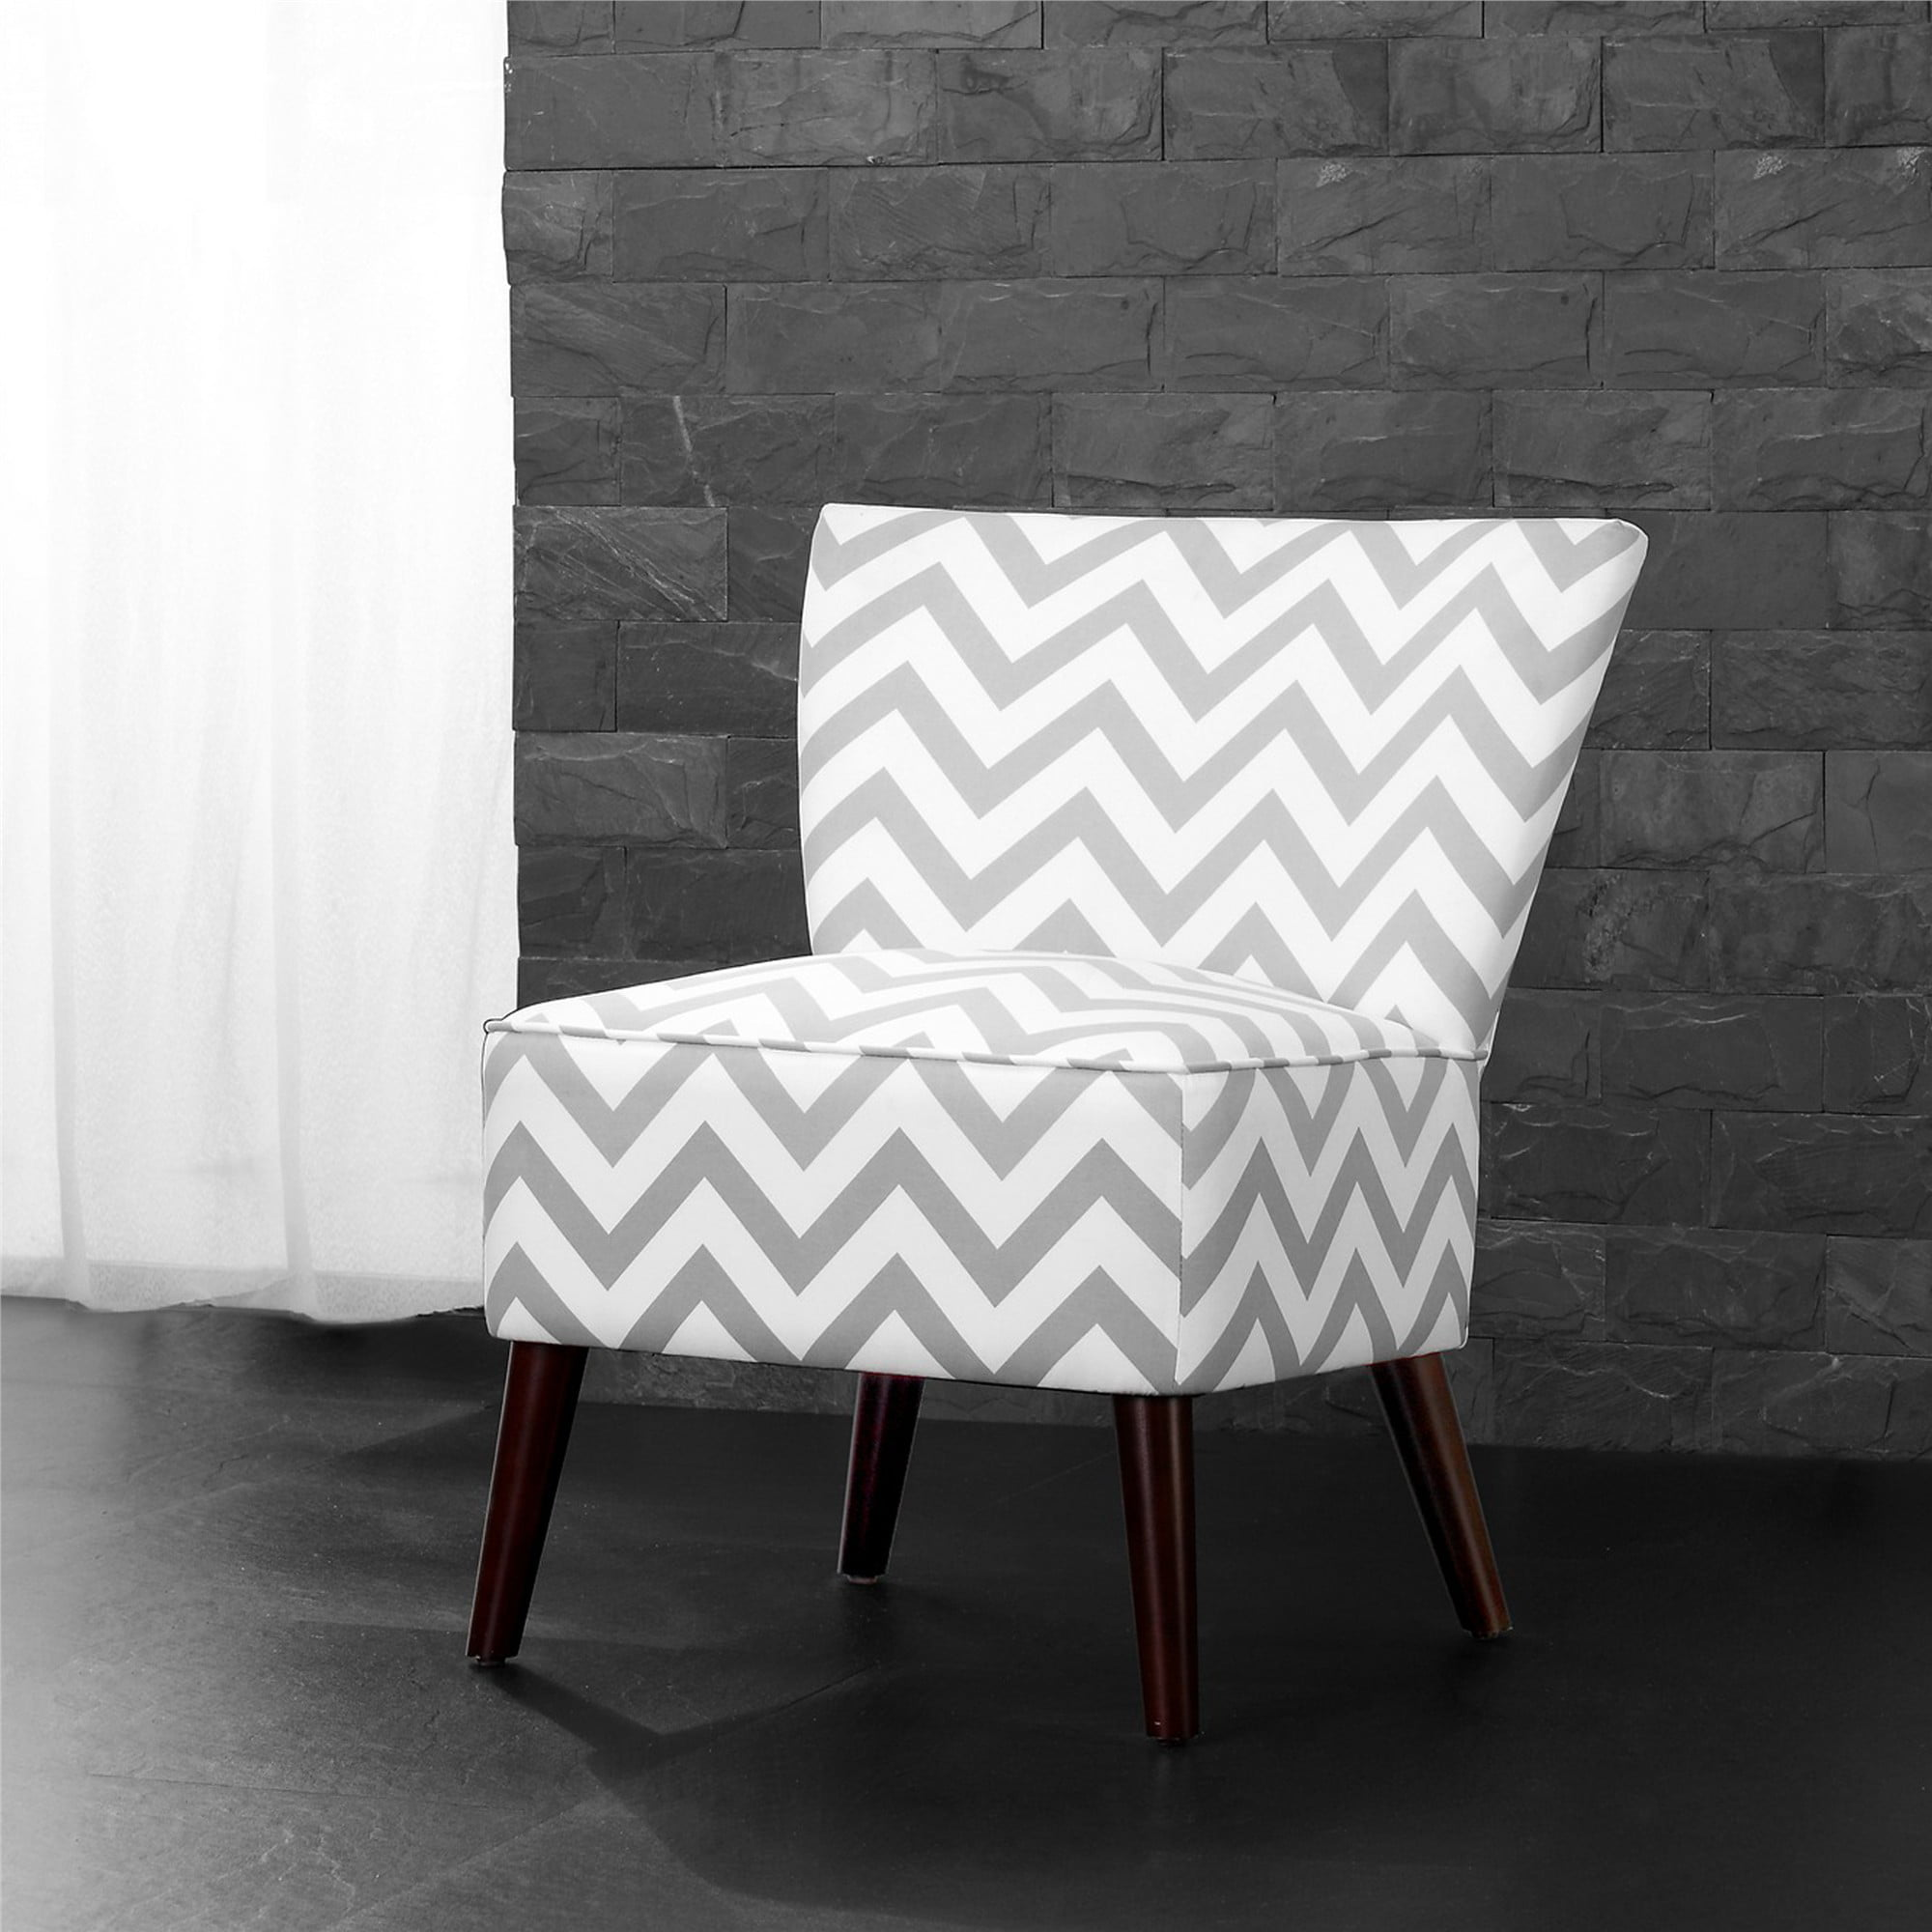 Marvelous Dorel Living Kinsley Chevron Accent Chair Gray And White Walmart Com Machost Co Dining Chair Design Ideas Machostcouk